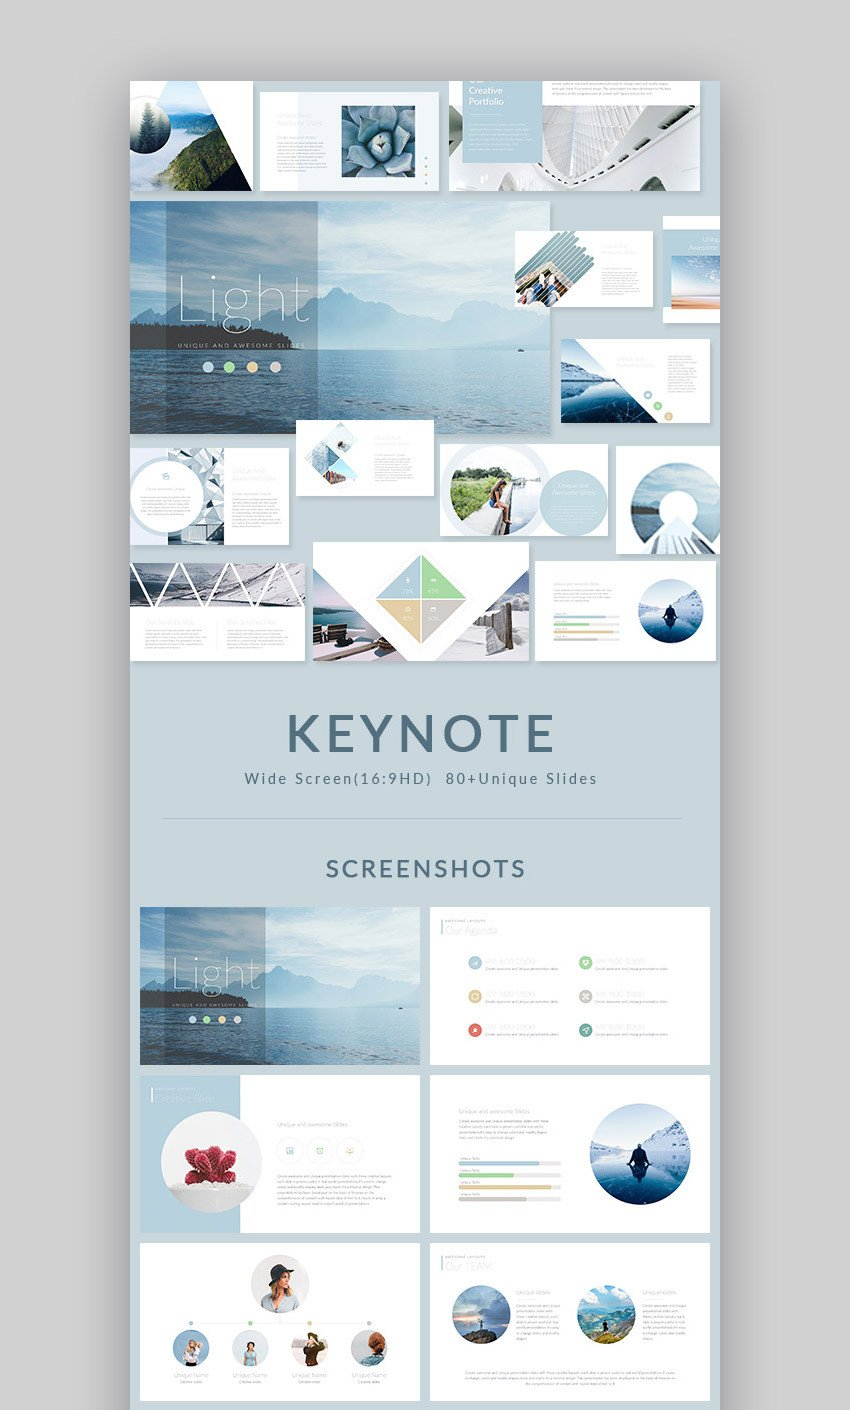 Keynote Templates for Mac 25 Mac Keynote themes Made to Customize Presentations